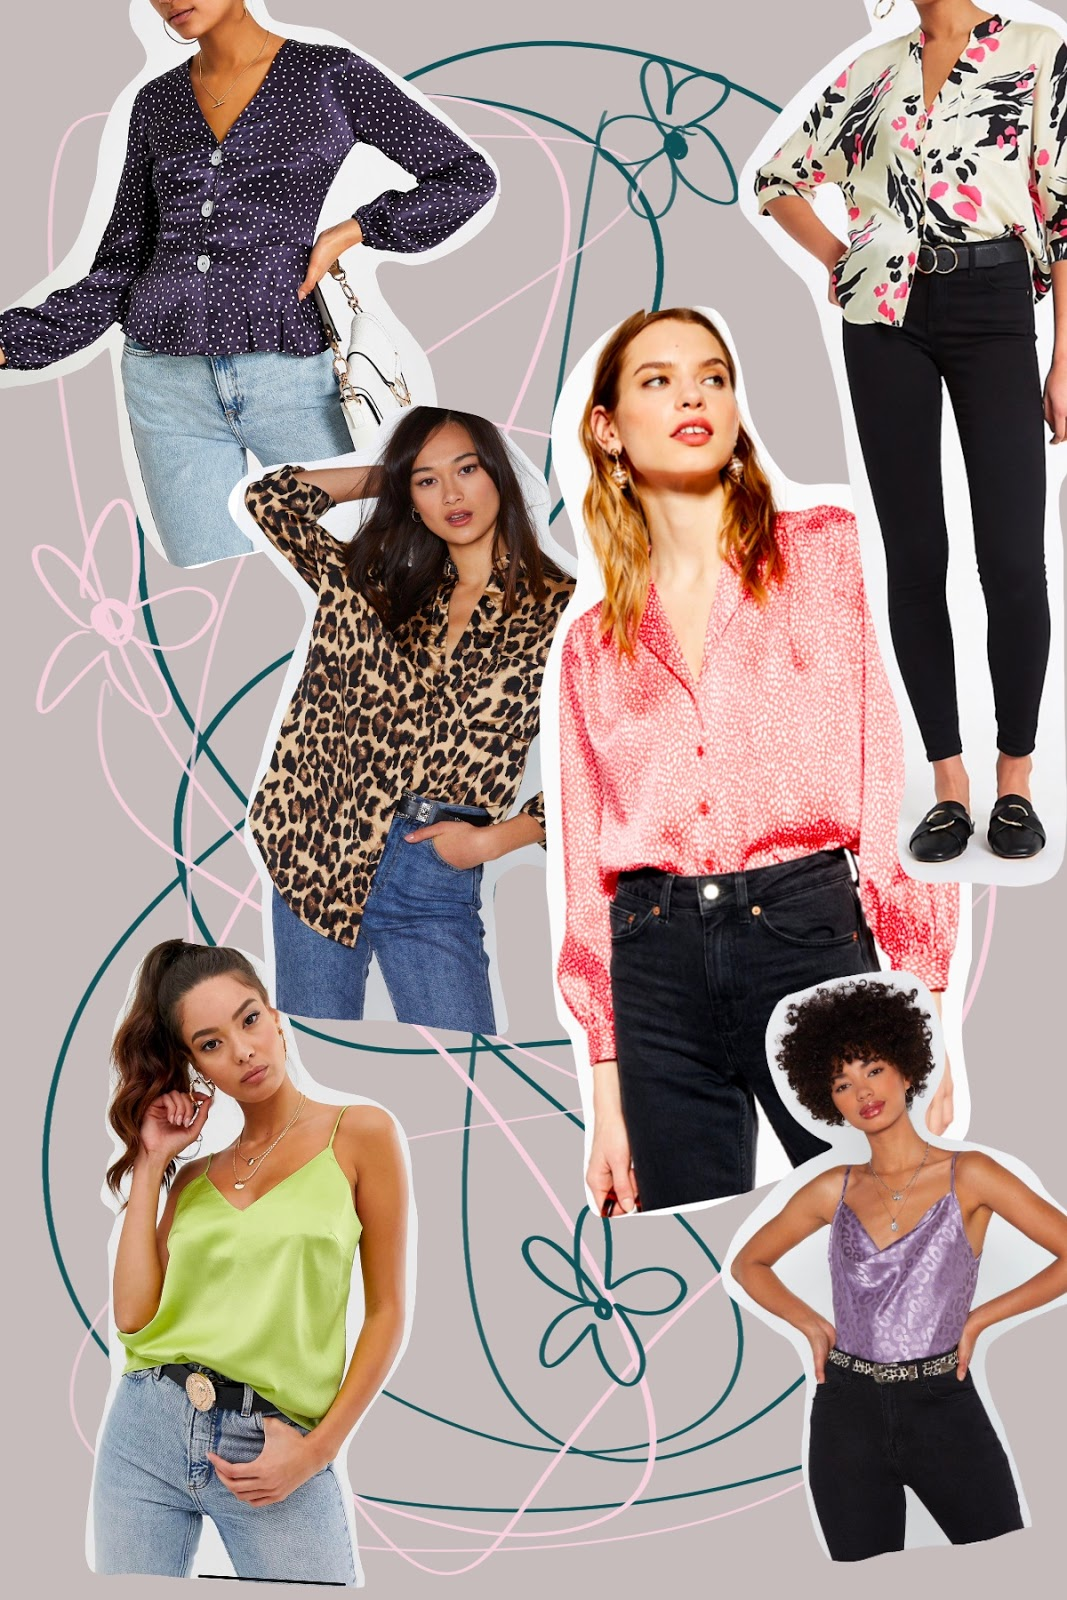 The High Street Guides: 'Jeans and a Nice Top'